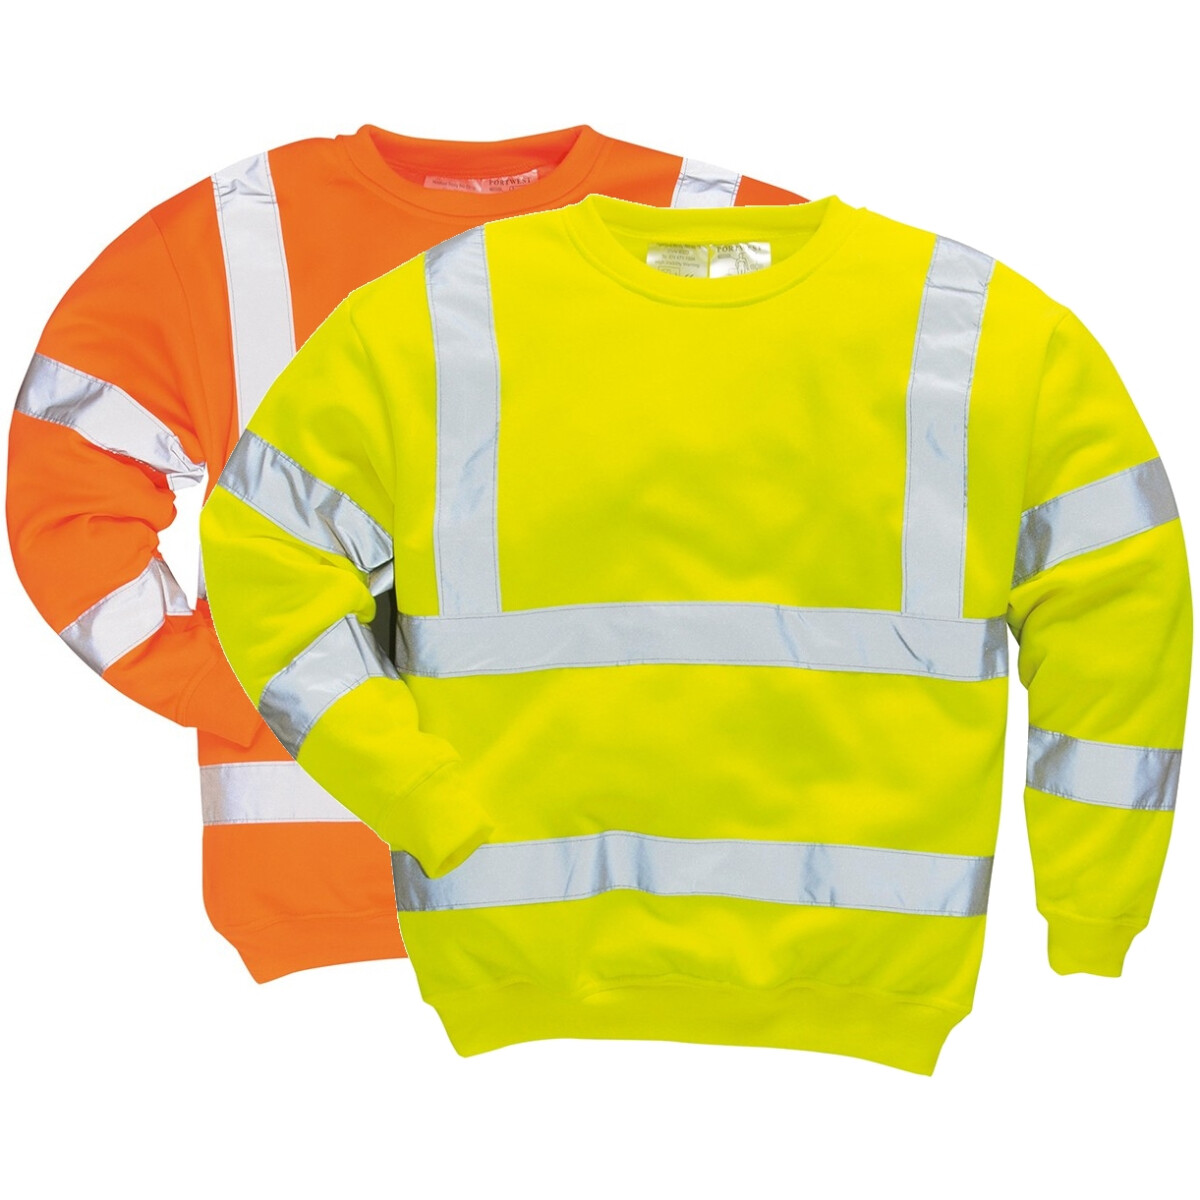 9fafe08cd Portwest B303 Hi-Vis Sweatshirt High Visibility - Yellow or Orange from  Lawson HIS